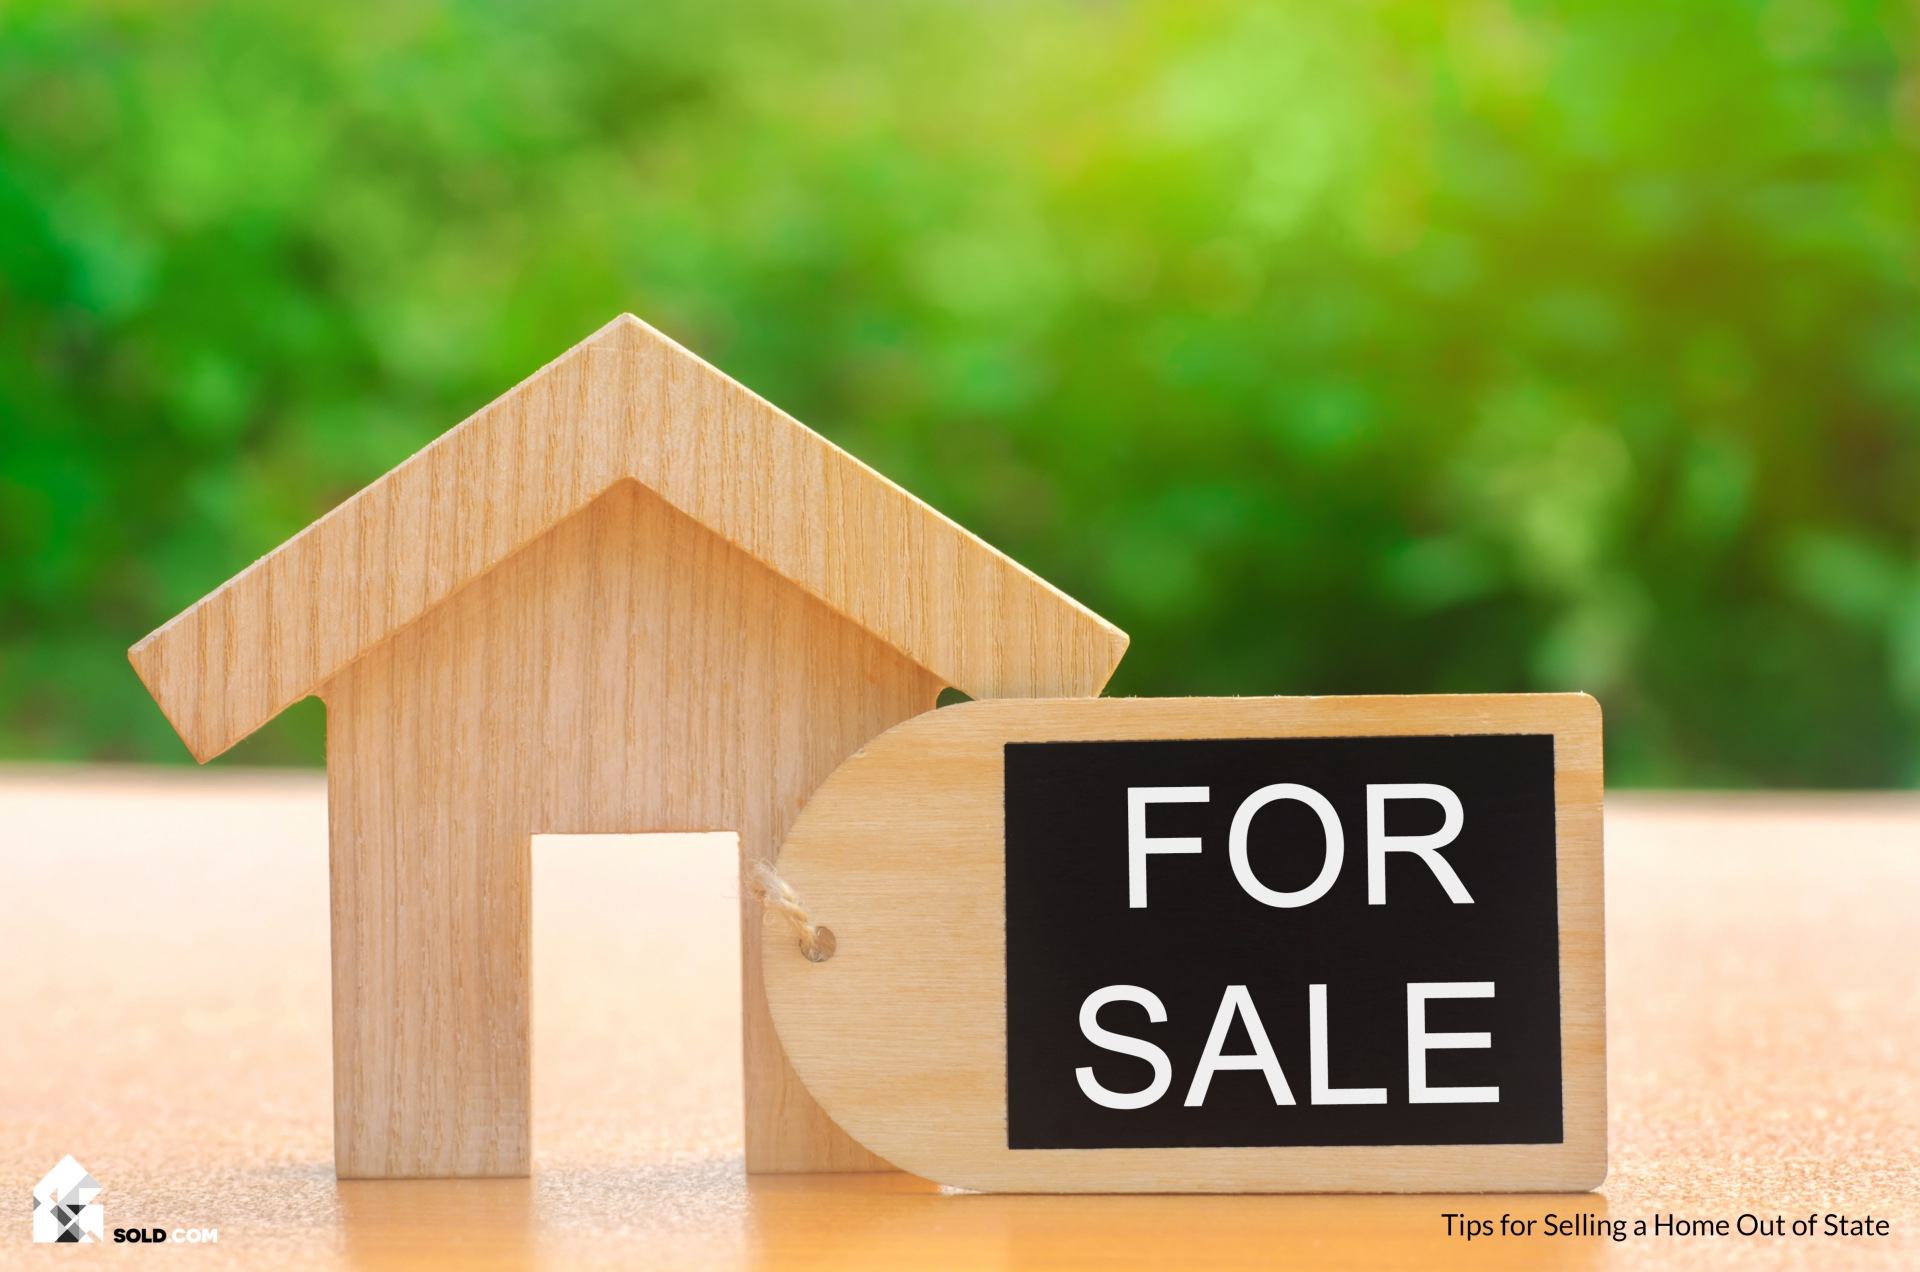 Tips for Selling a Home Out of State